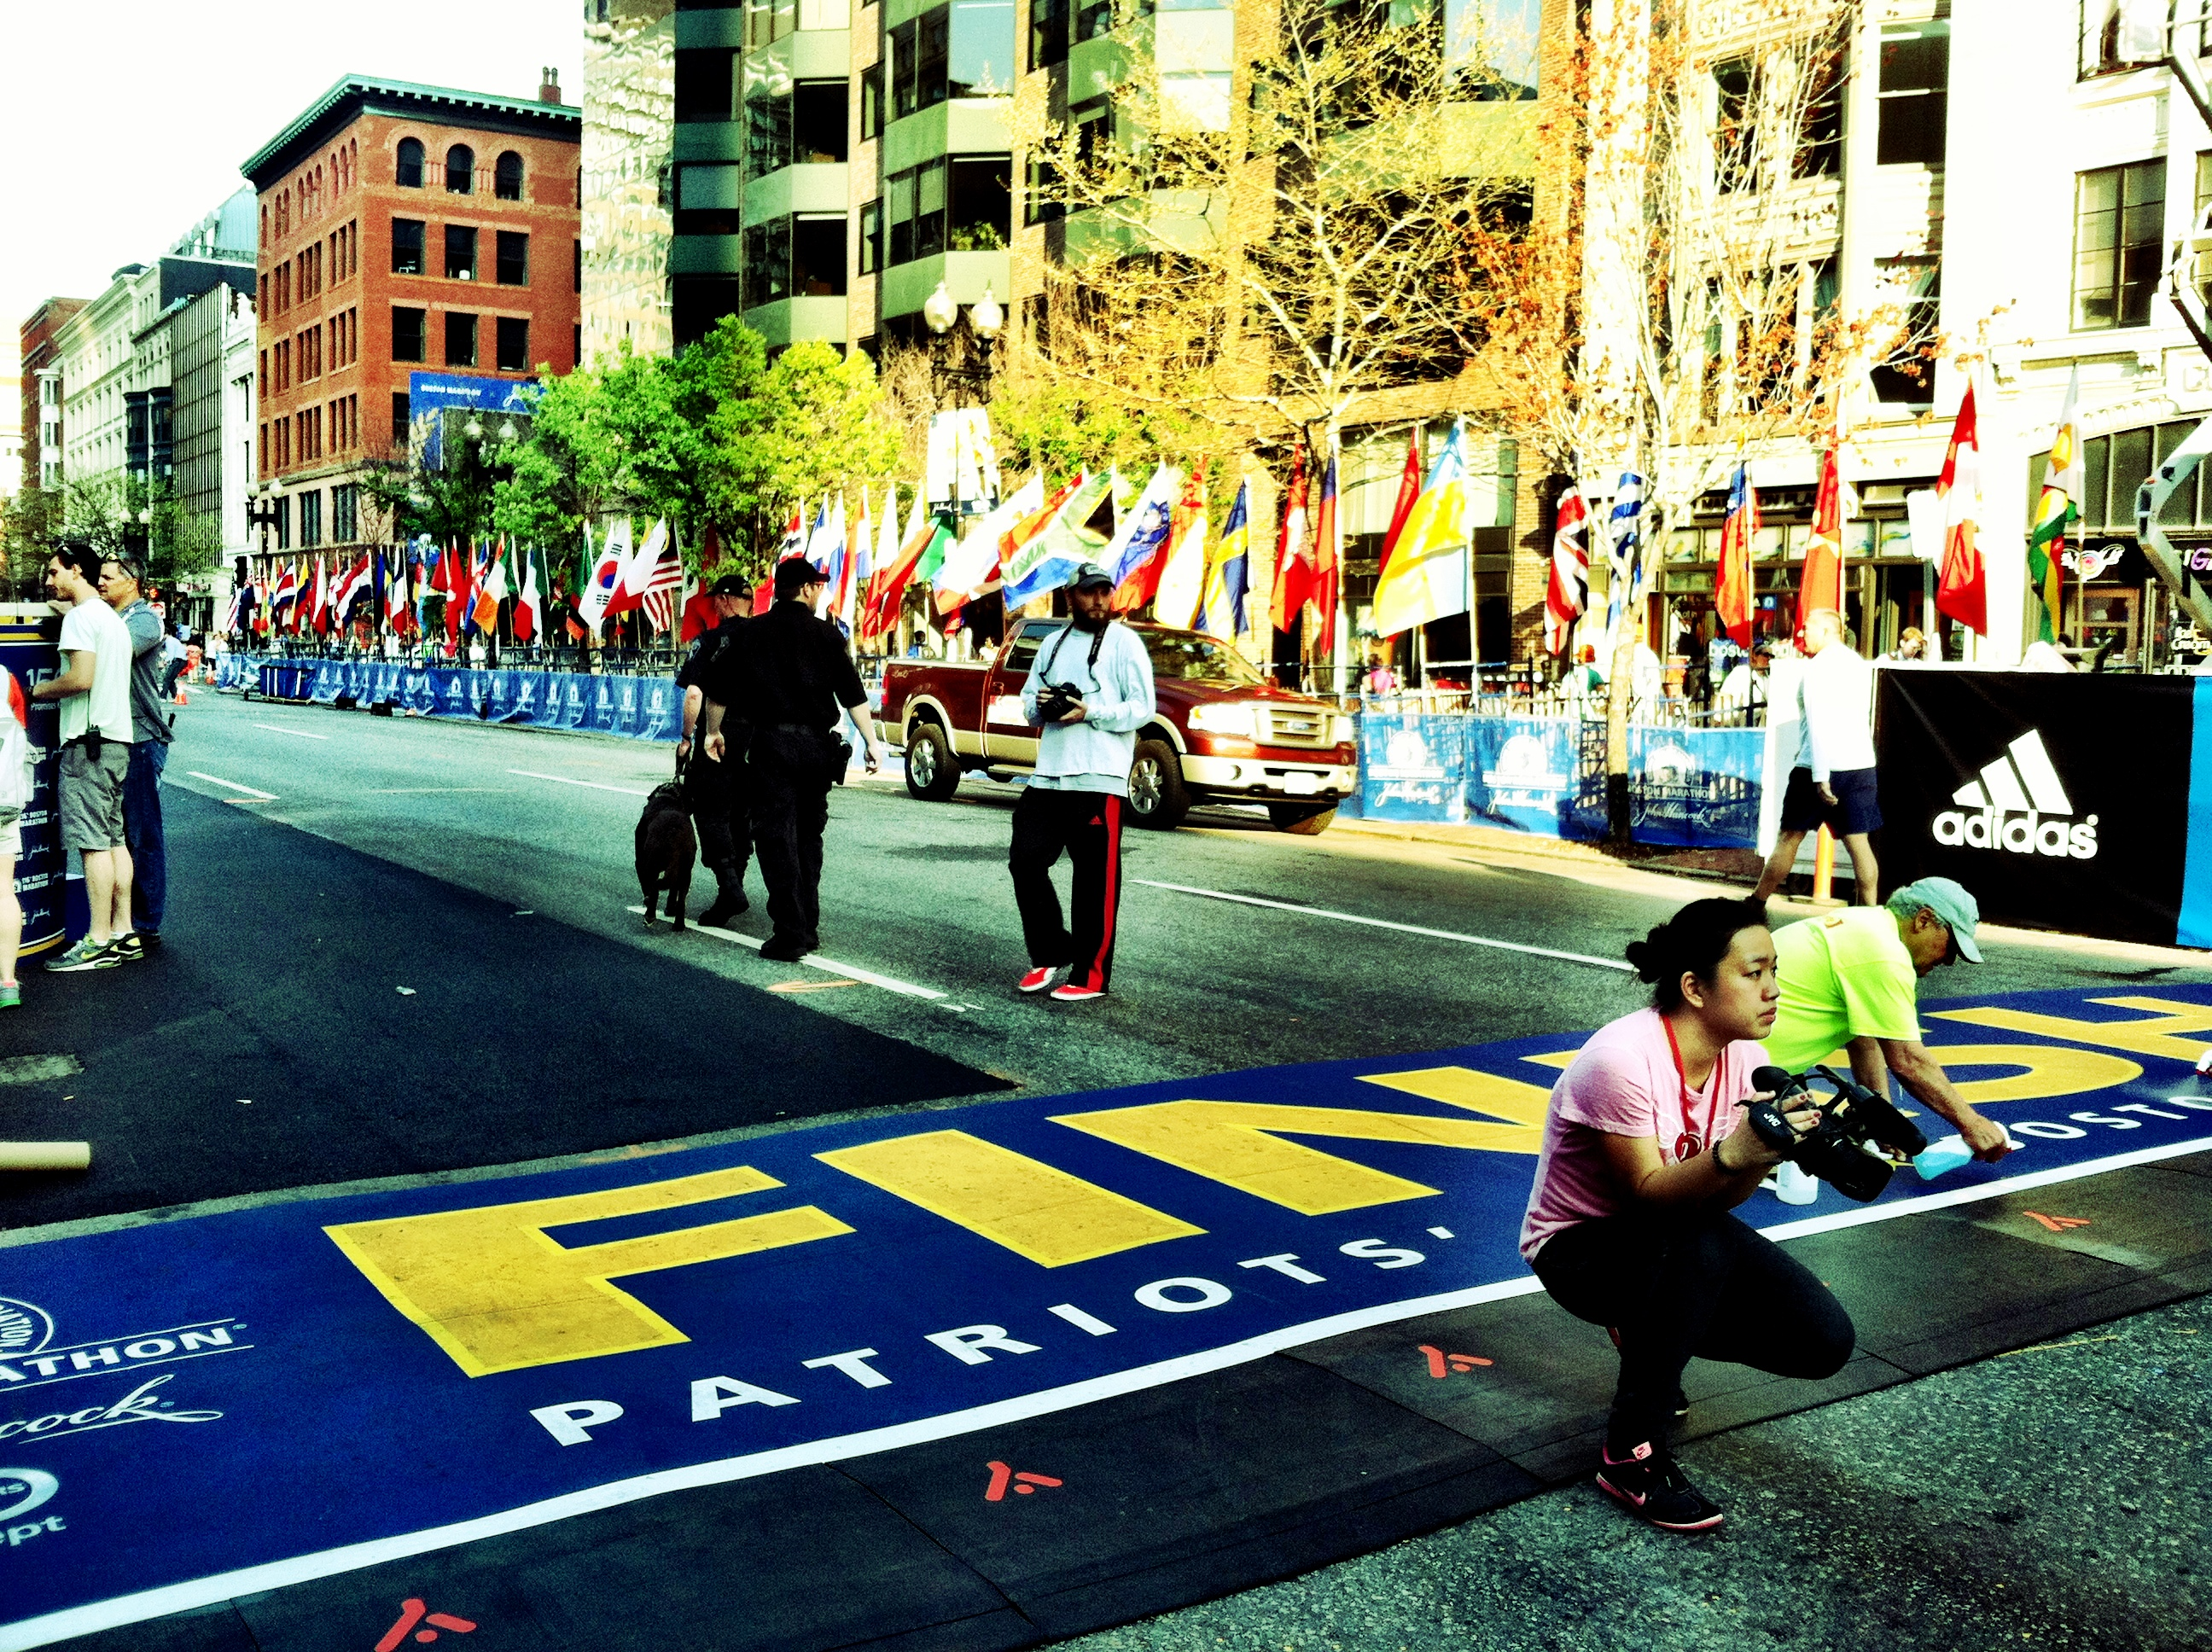 Boston Marathon Finish Line 2012